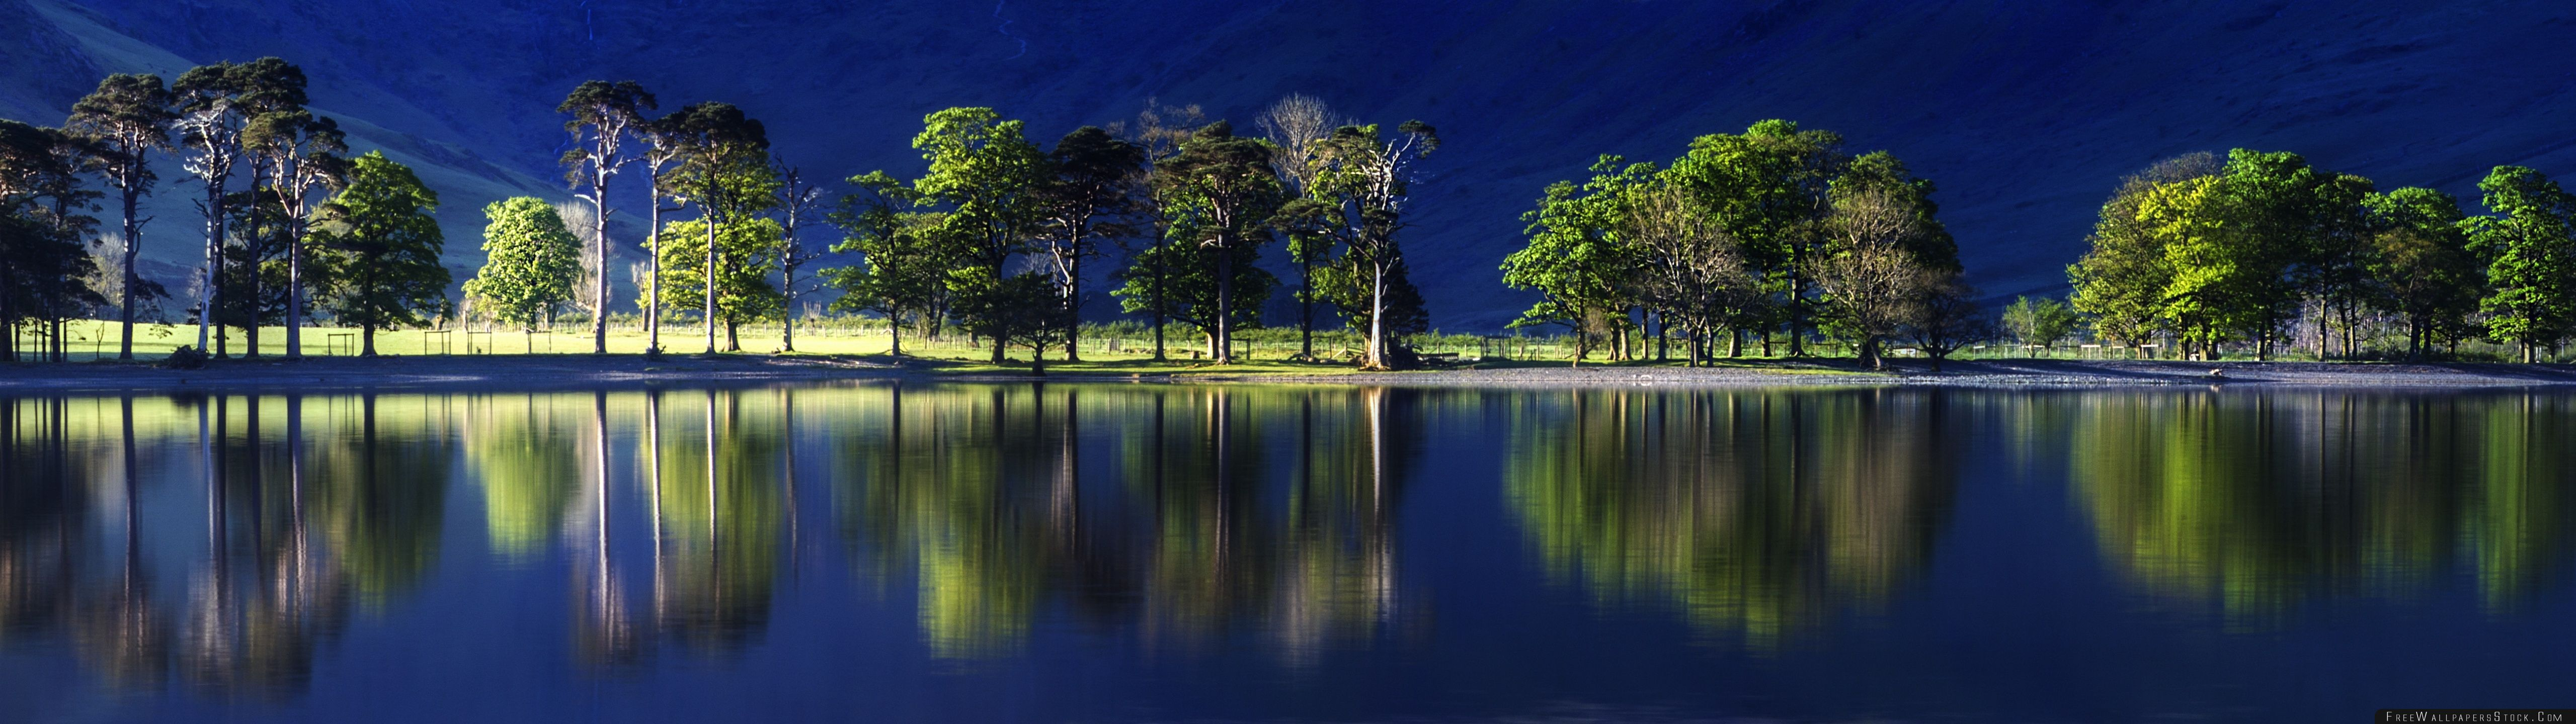 Download Free Wallpaper Beatiful Reflection Blue Water Green Trees